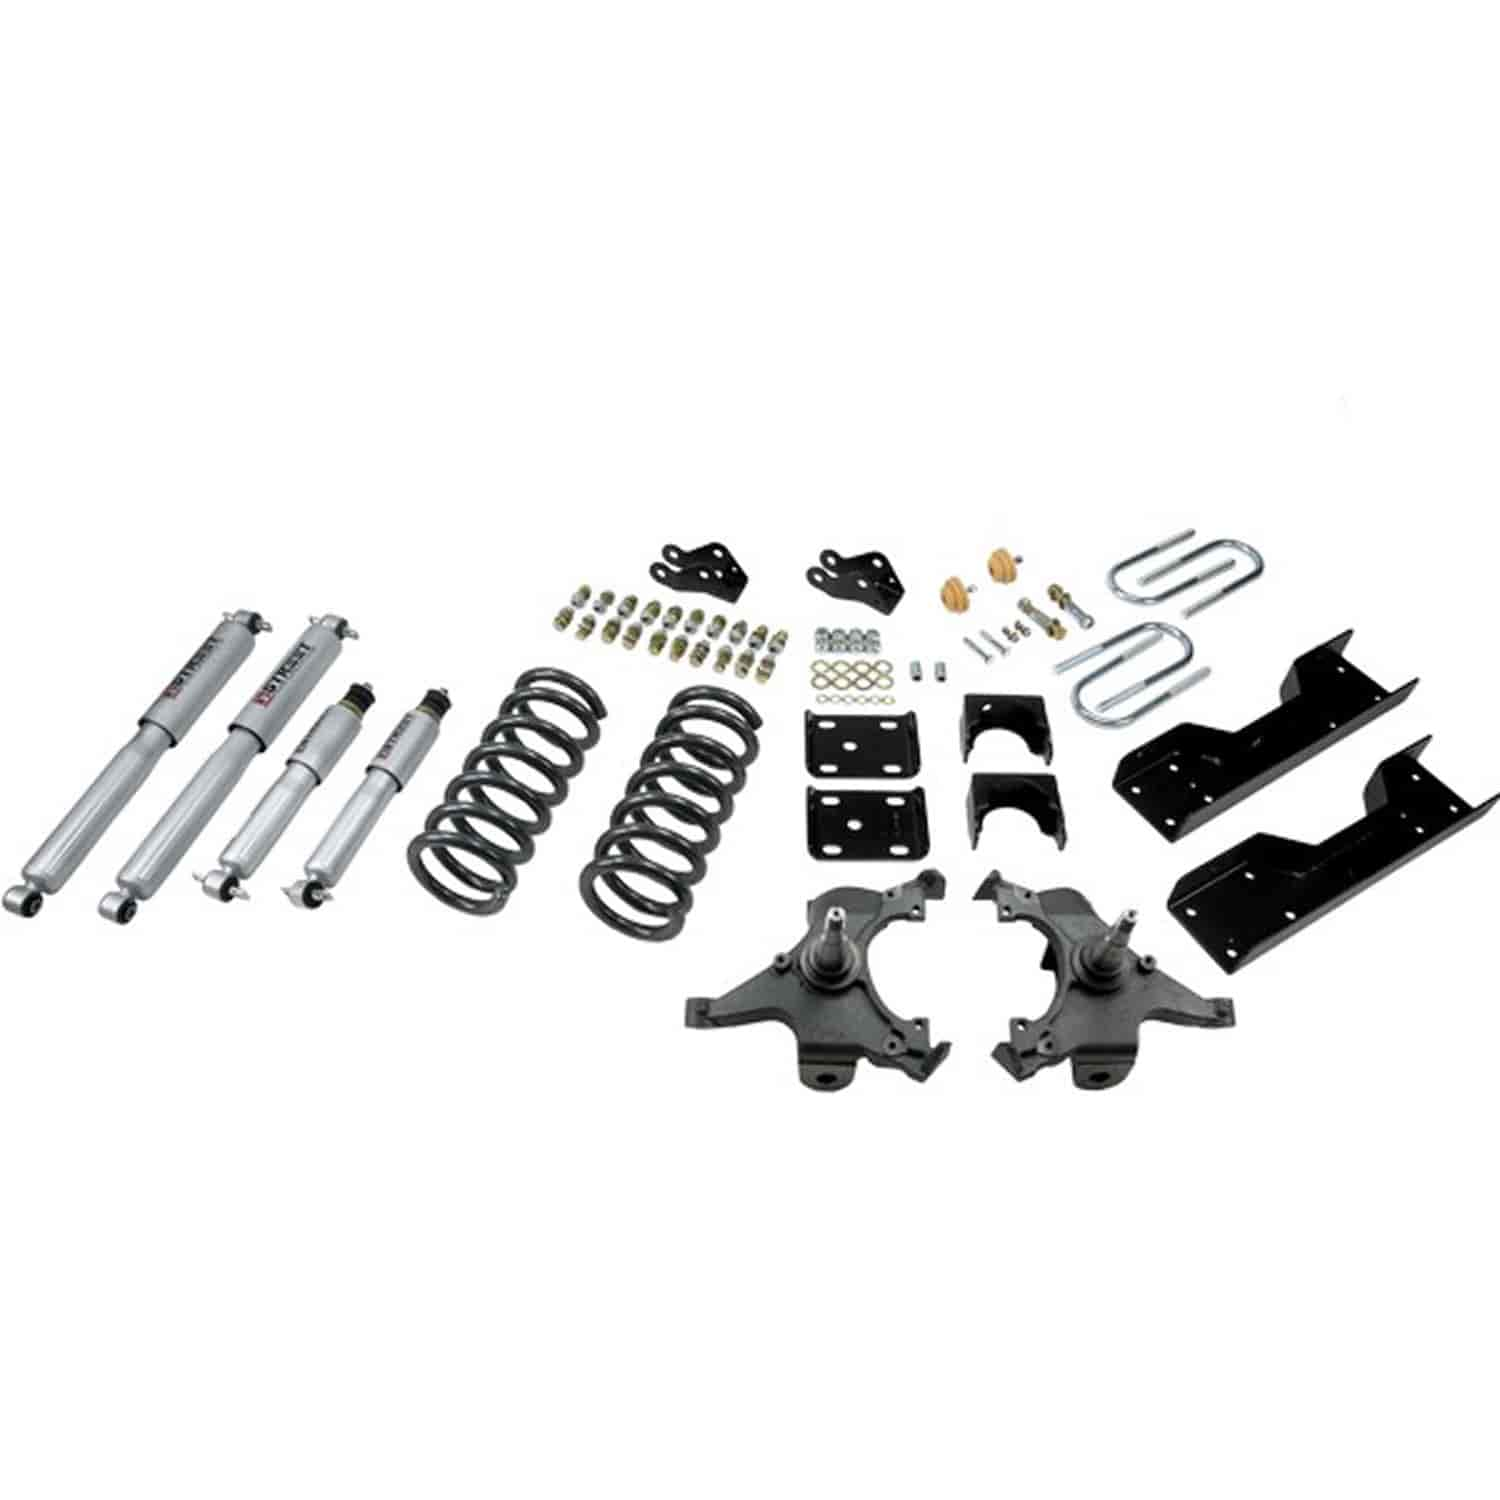 Belltech 701sp Complete Lowering Kit For Gm